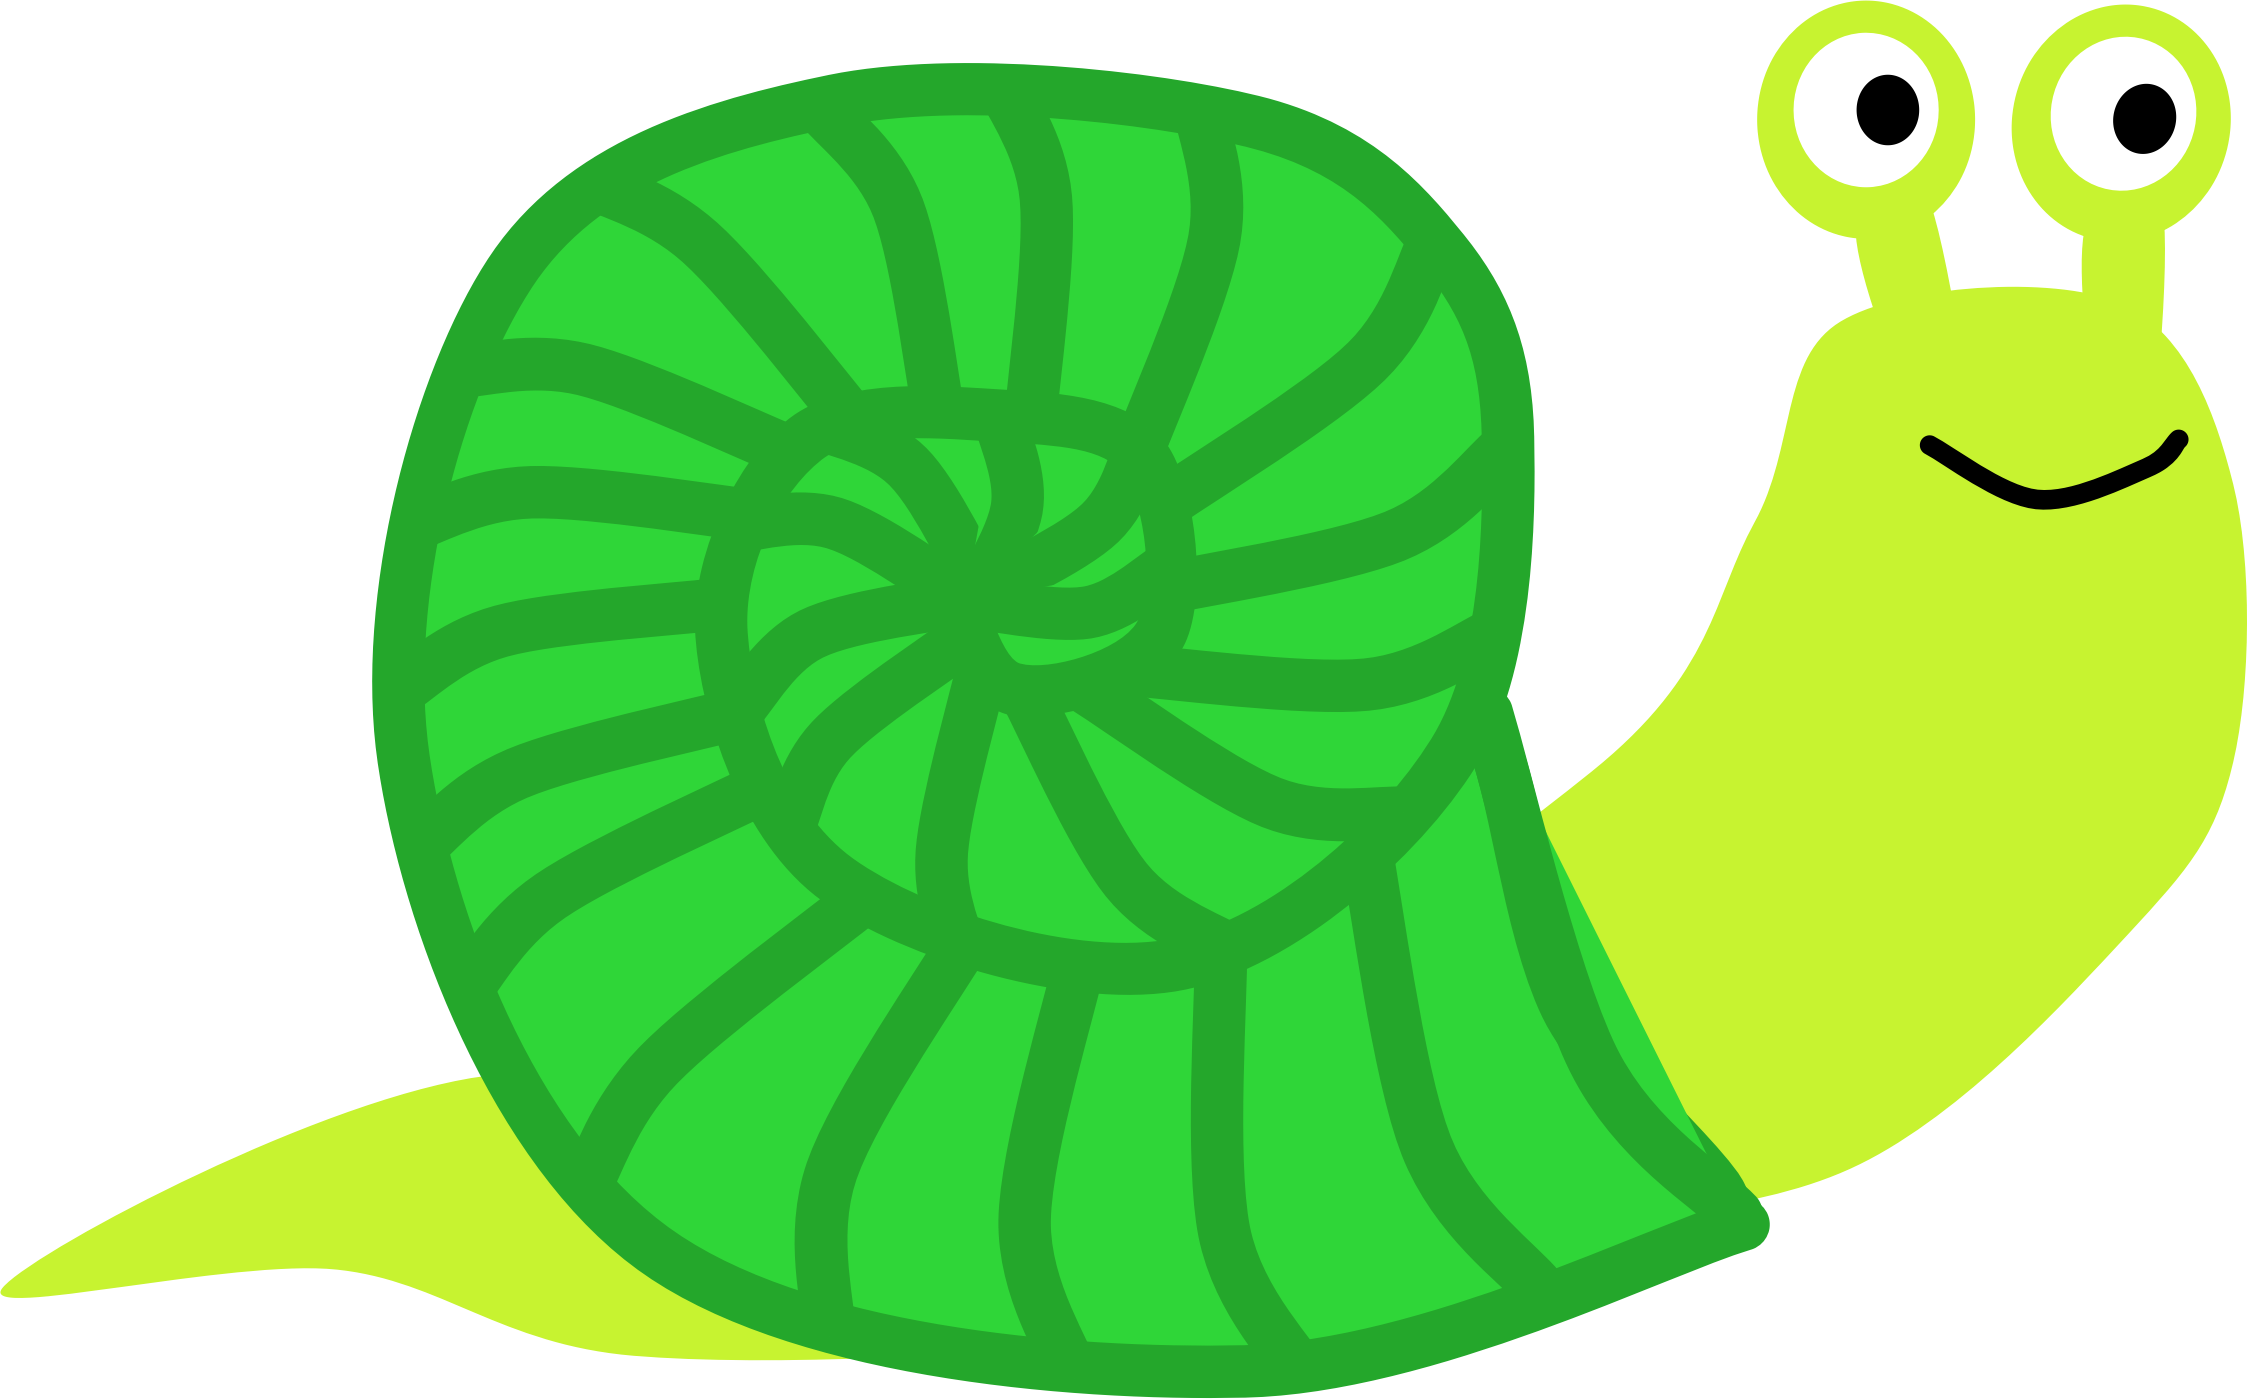 Snail by Scout